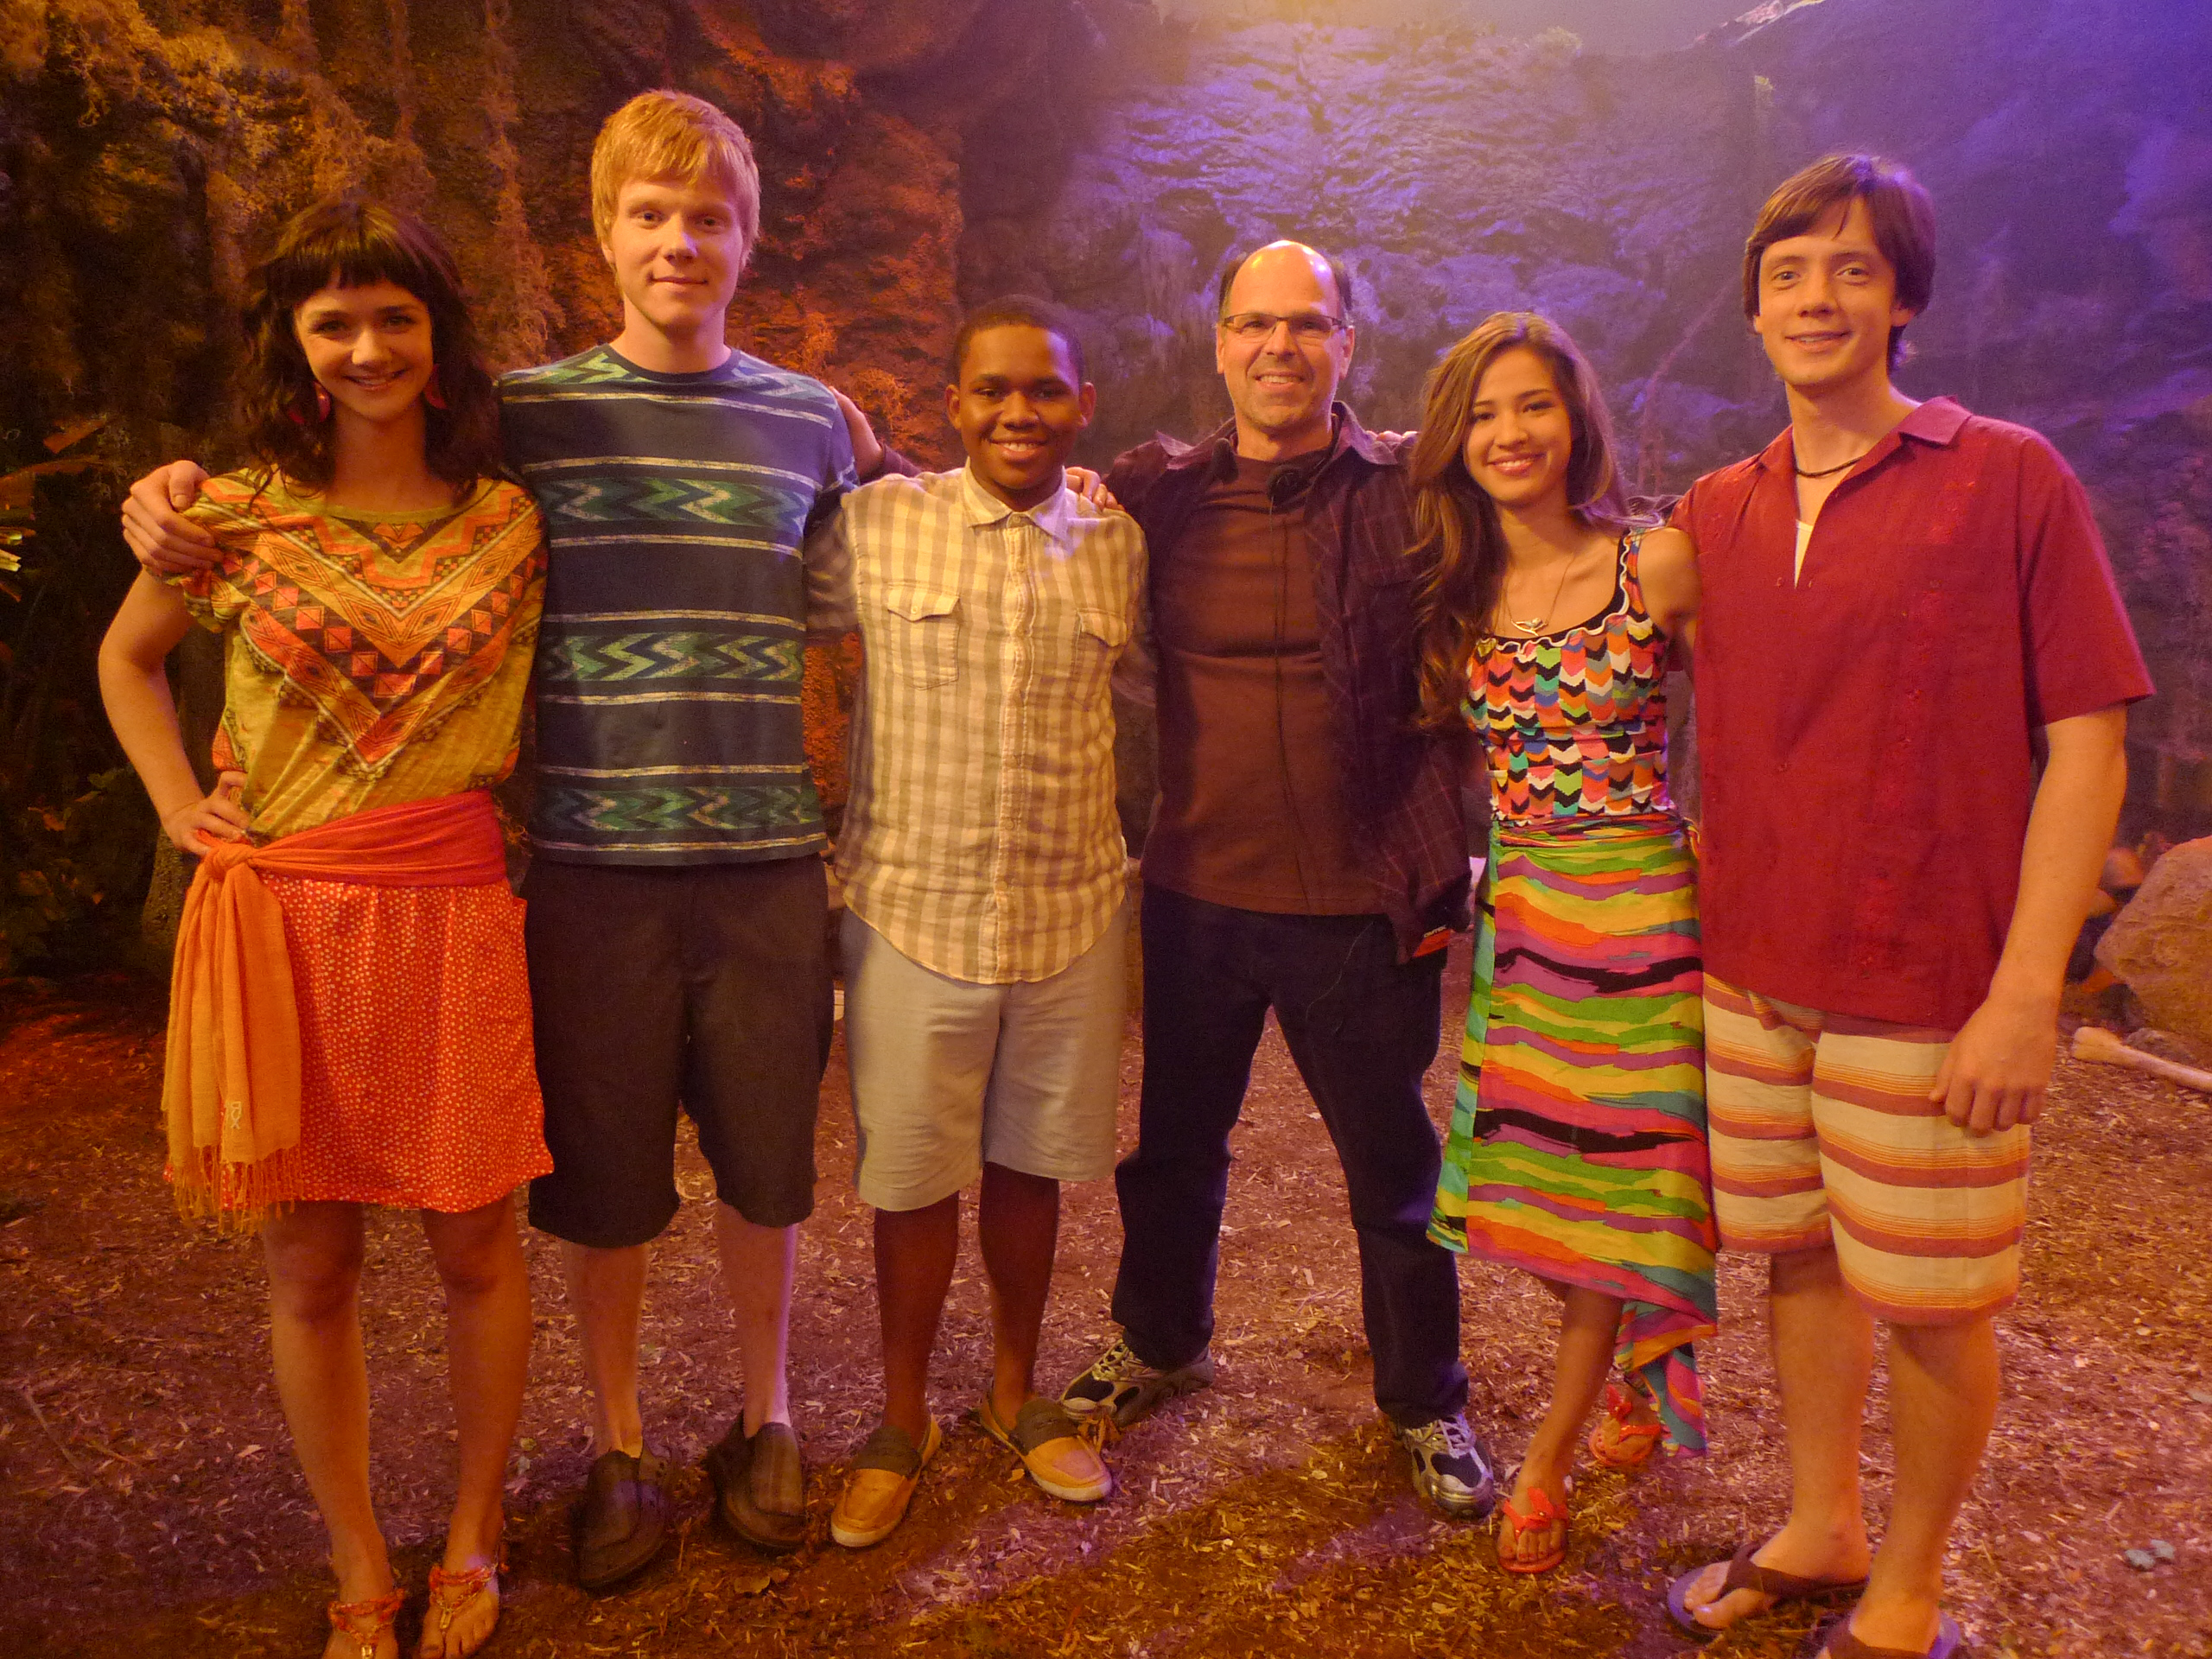 Pair of Kings behind the scenes